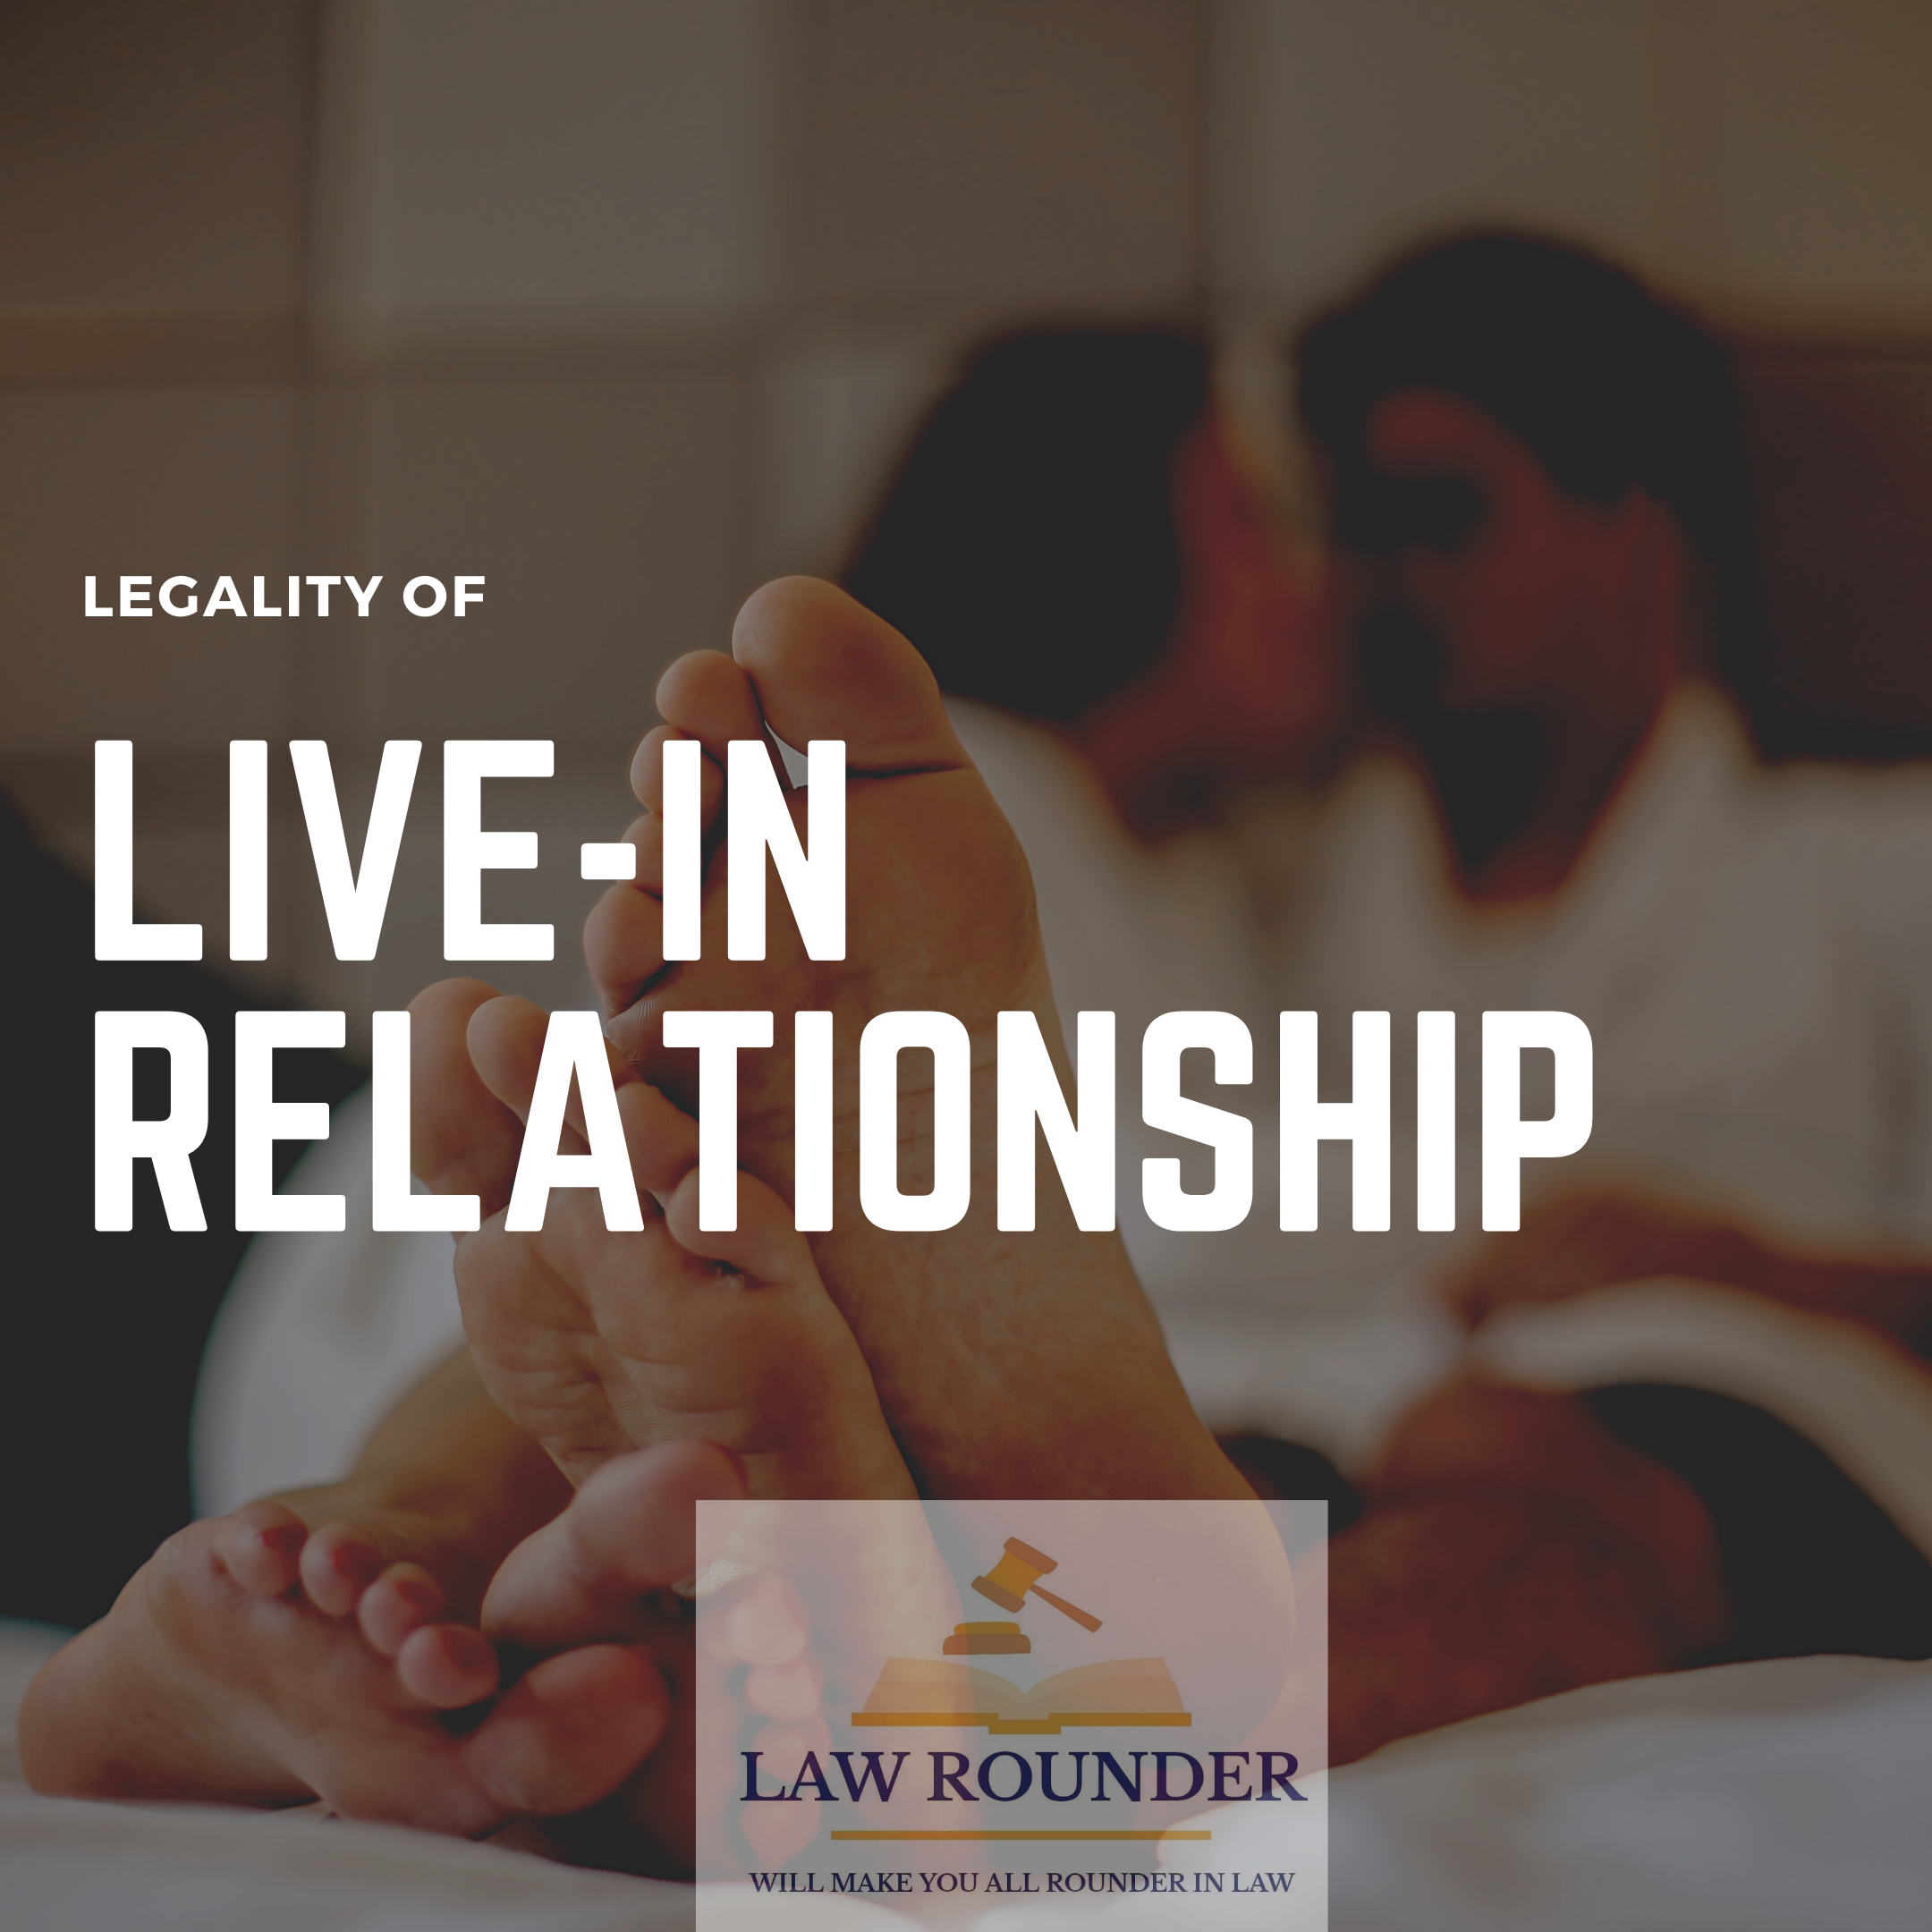 Legality of live-in relationship